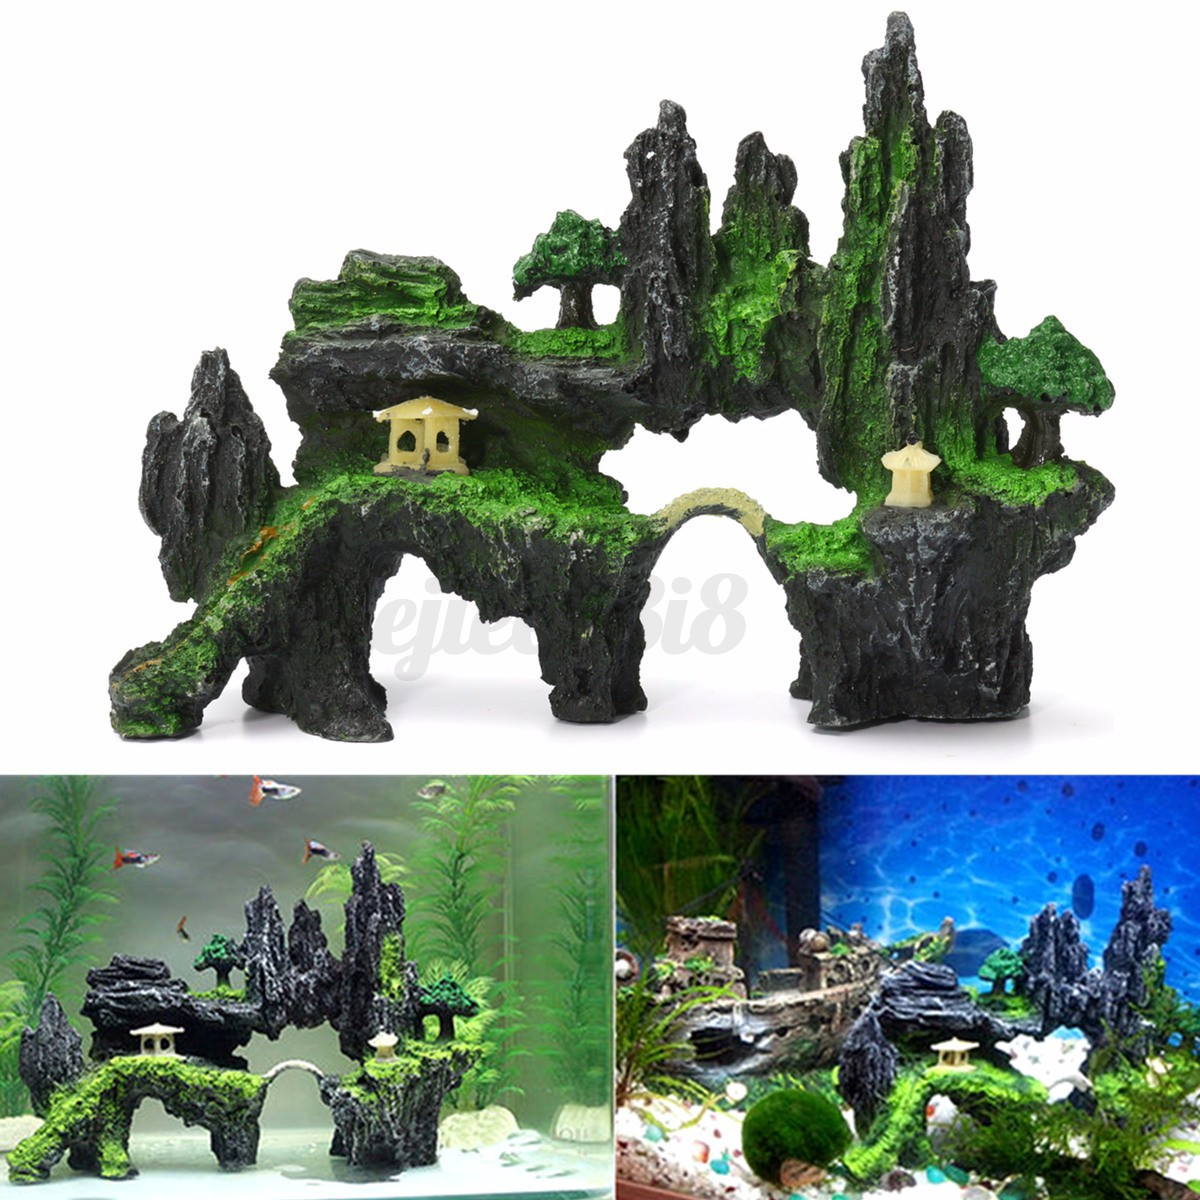 Mountain aquarium plant view tree cave stone bridge fish for Aquarium cave decoration